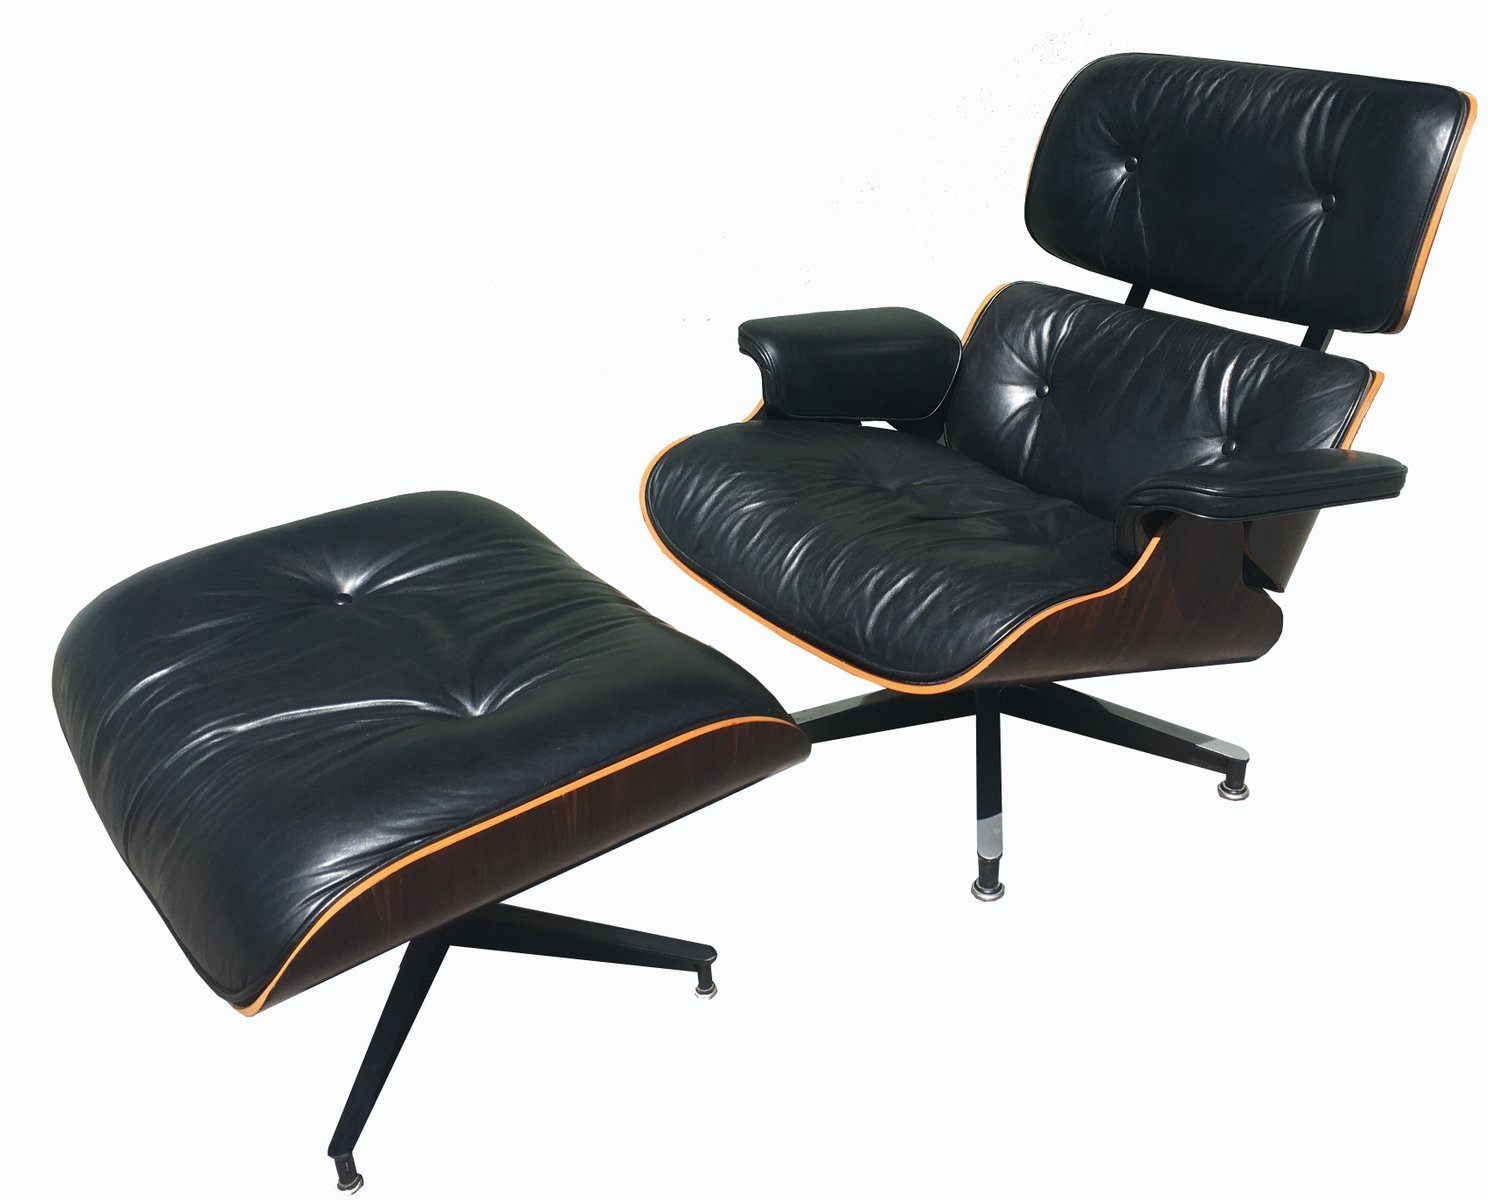 670 671 lounge chair ottoman by charles and ray eames for Charles eames lounge chair nachbildung